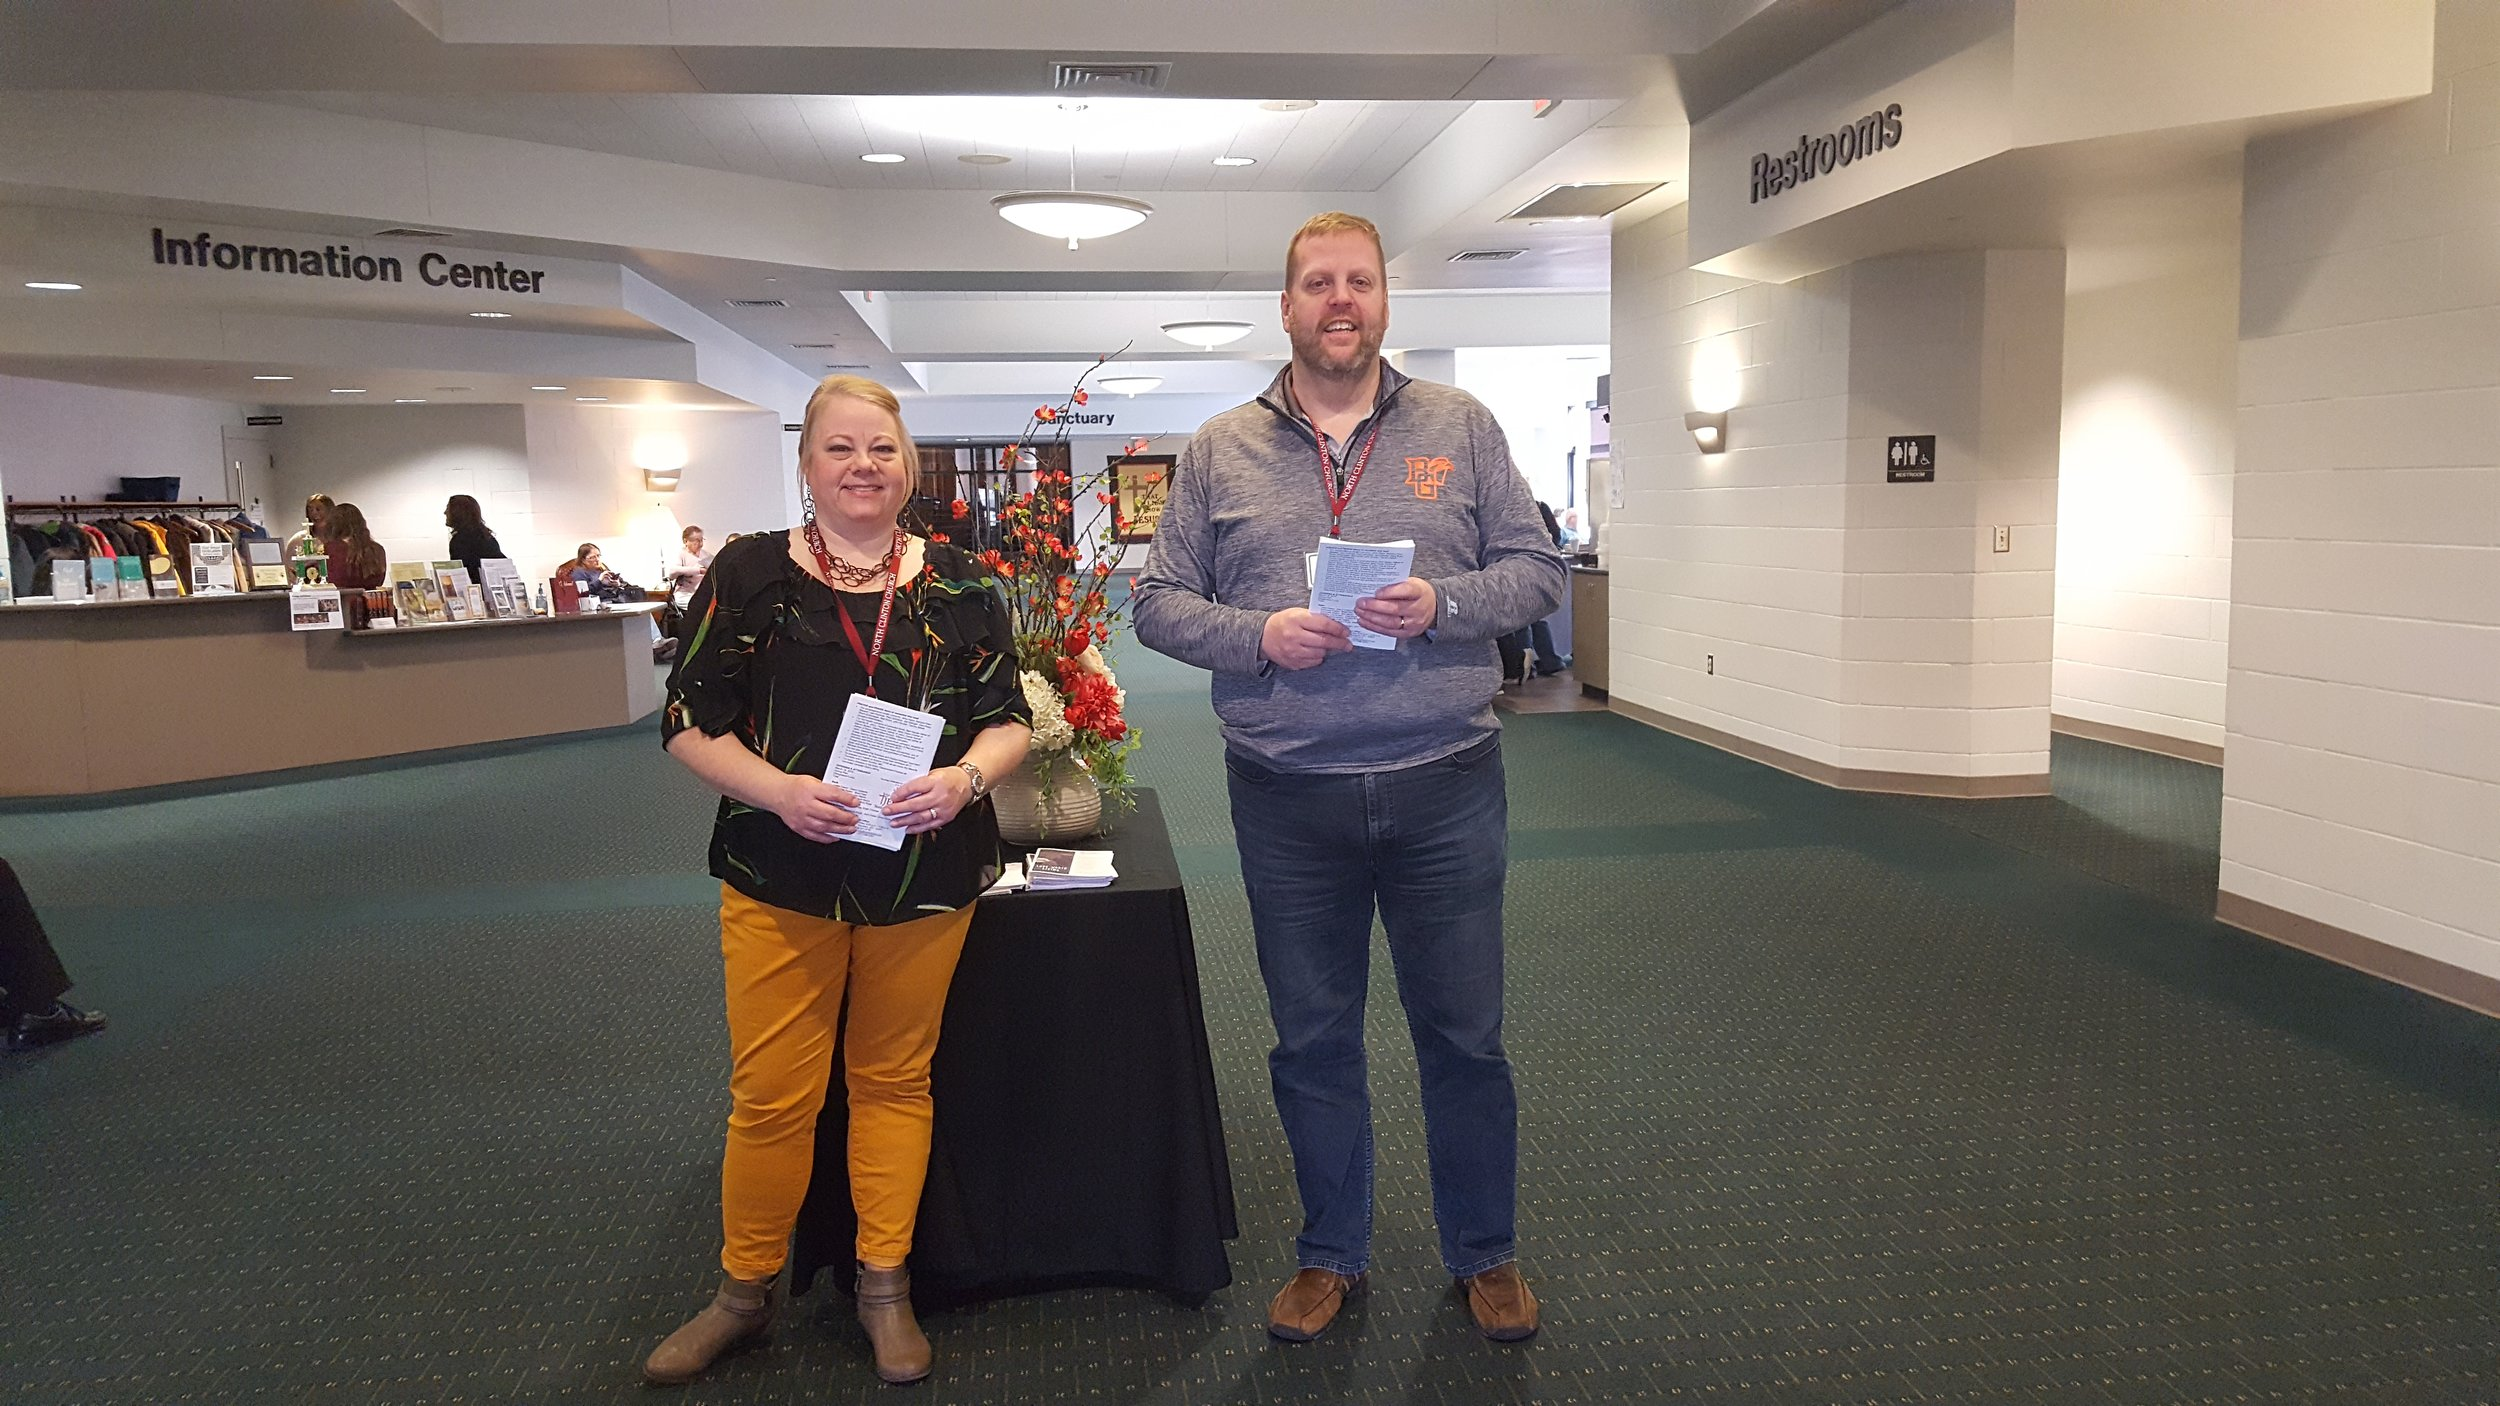 Greeters are on hand to welcome you at the south and east entrance and provide any information you may want.